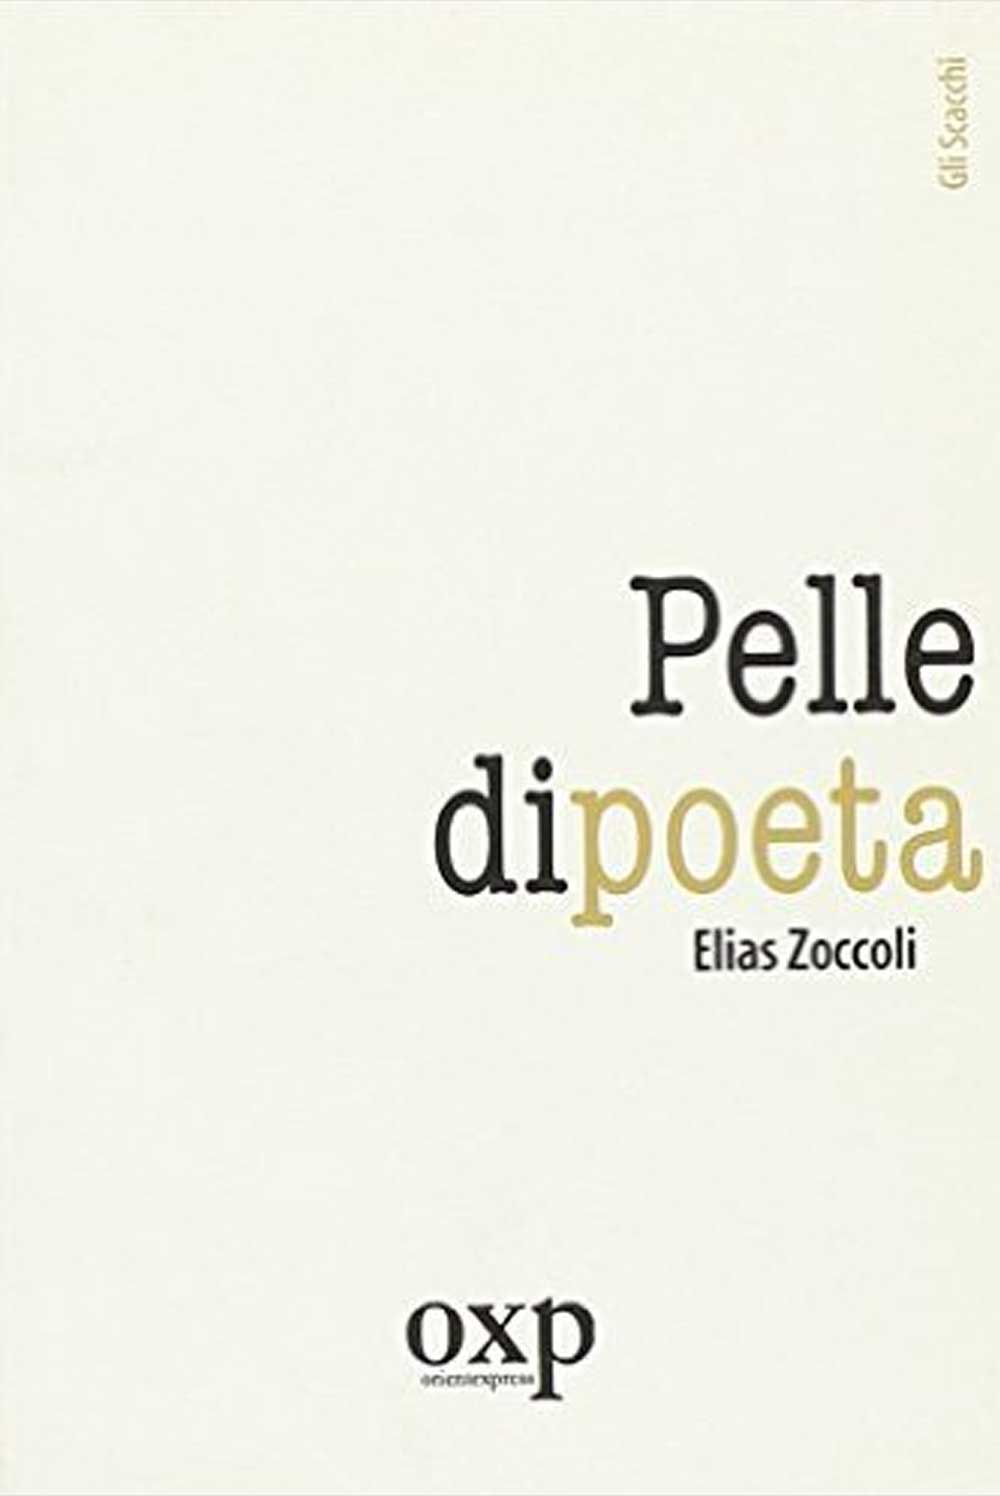 https://www.amazon.it/Pelle-poeta-Elias-Zoccoli/dp/8895007166